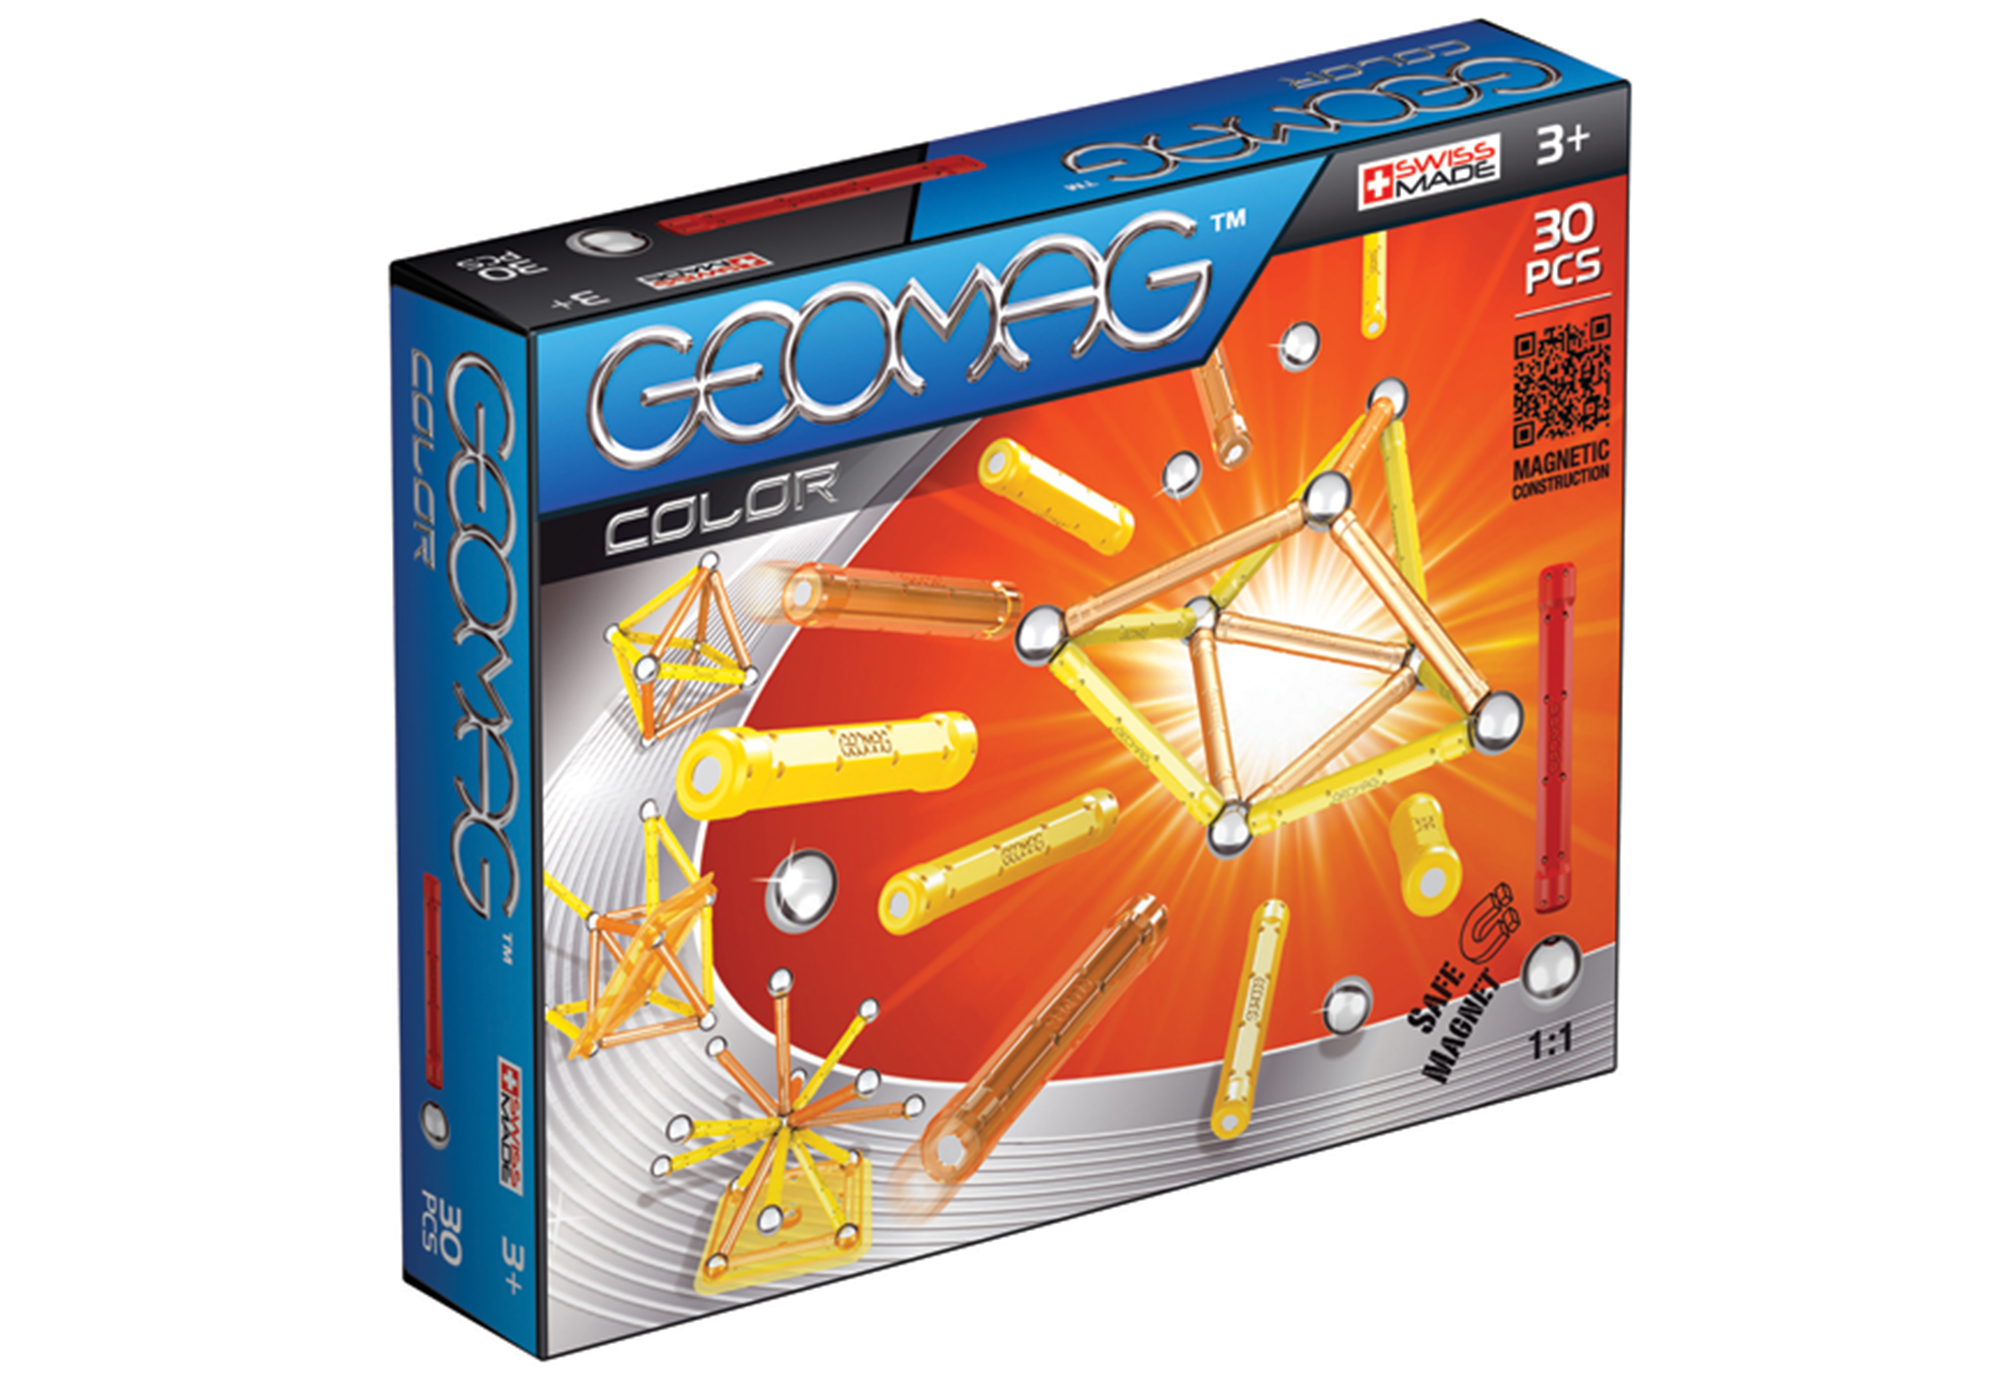 Geomag Colour 30pcs